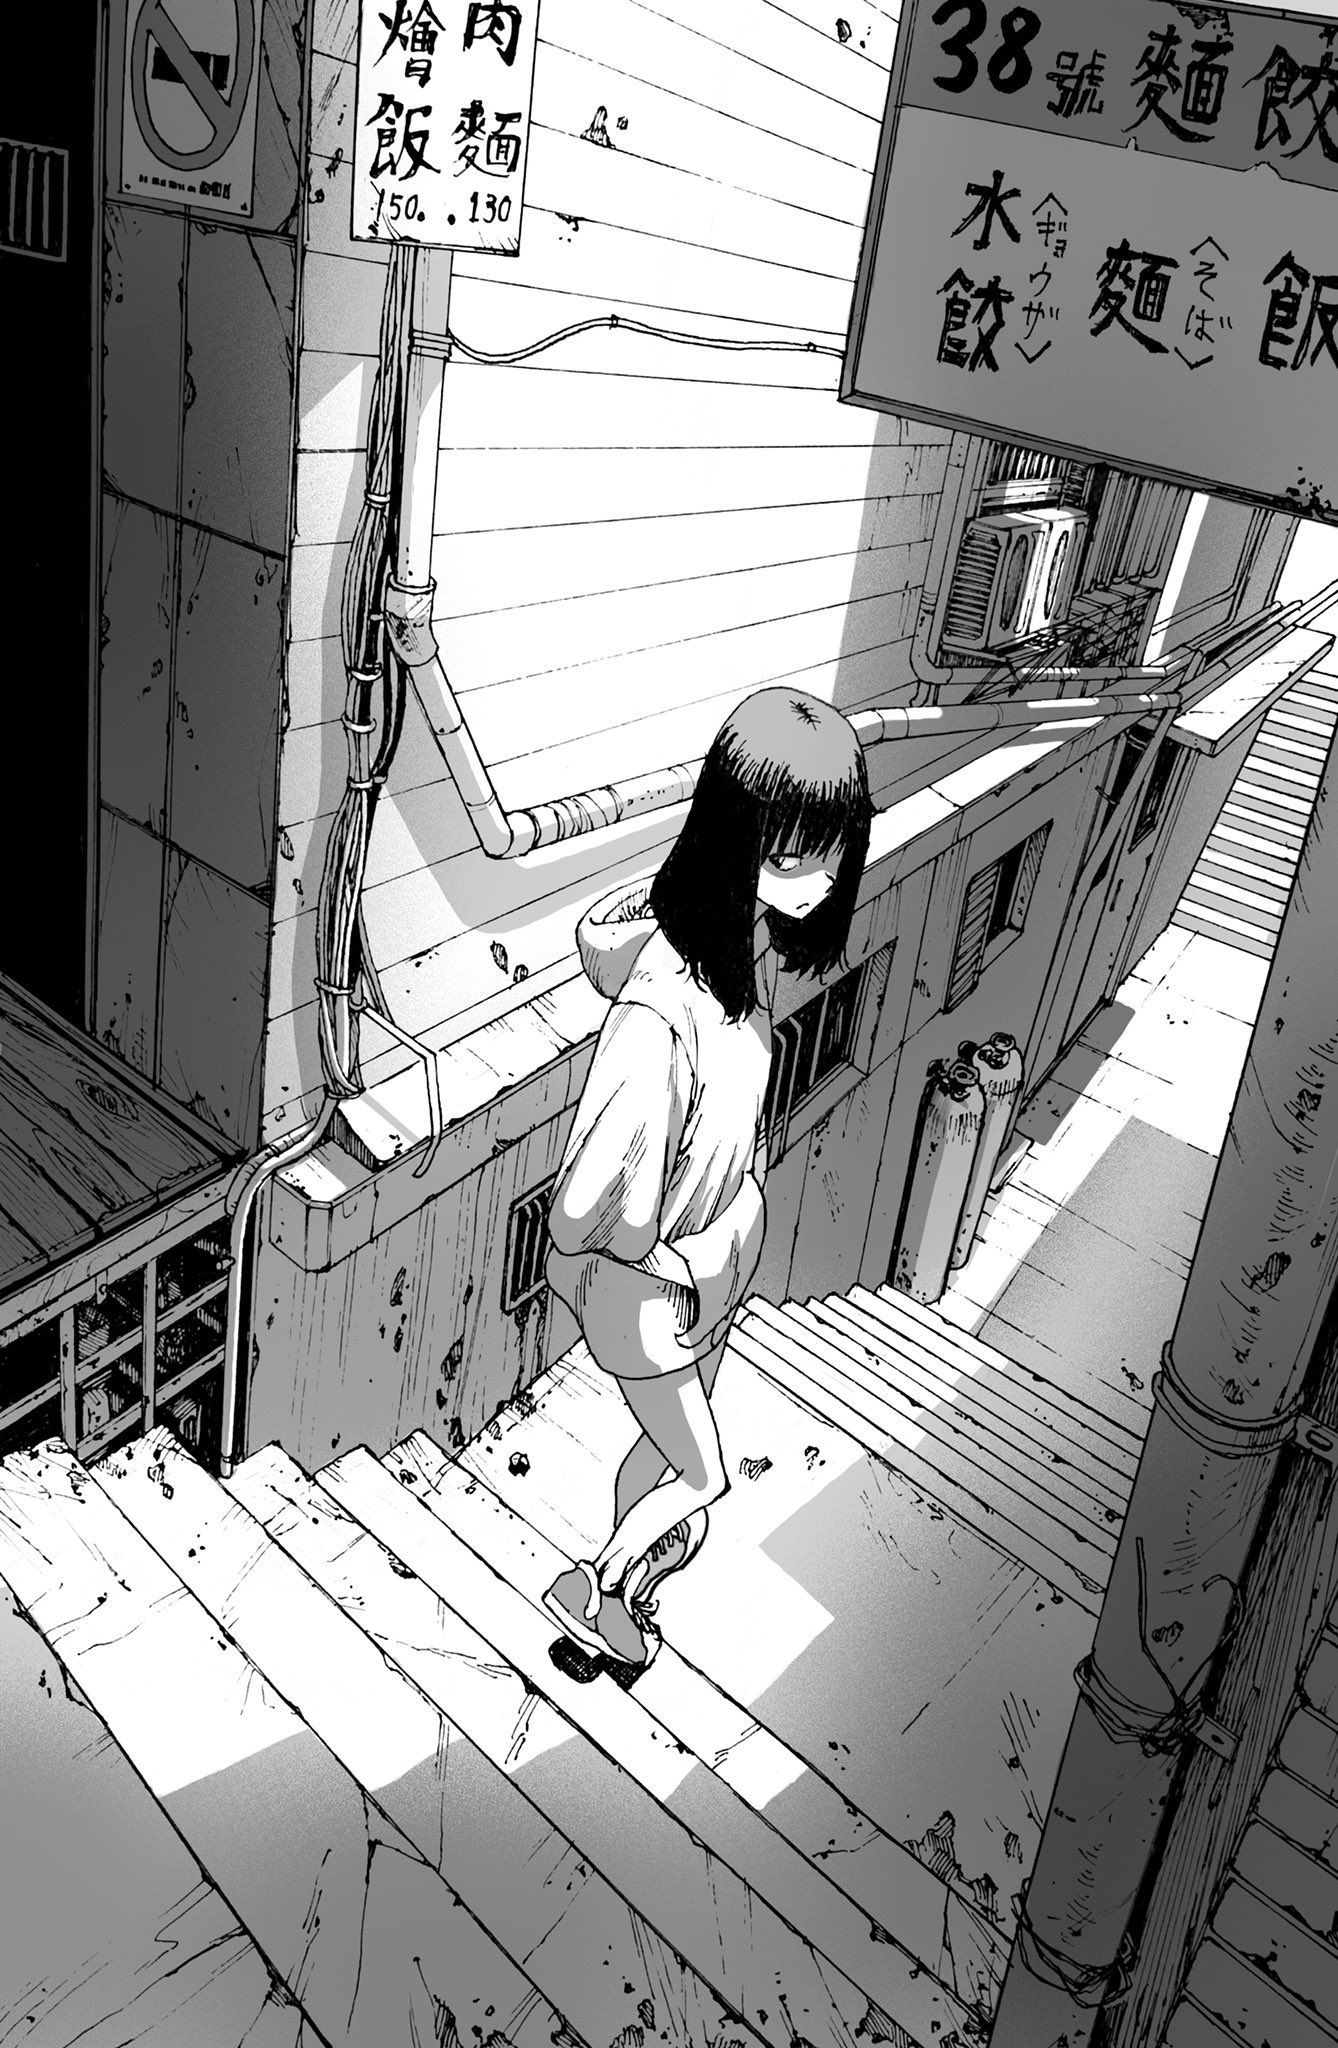 Pin By Devrim Dinar On Manga Background In 2020 Perspective Art Perspective Drawing Lessons Manga Art